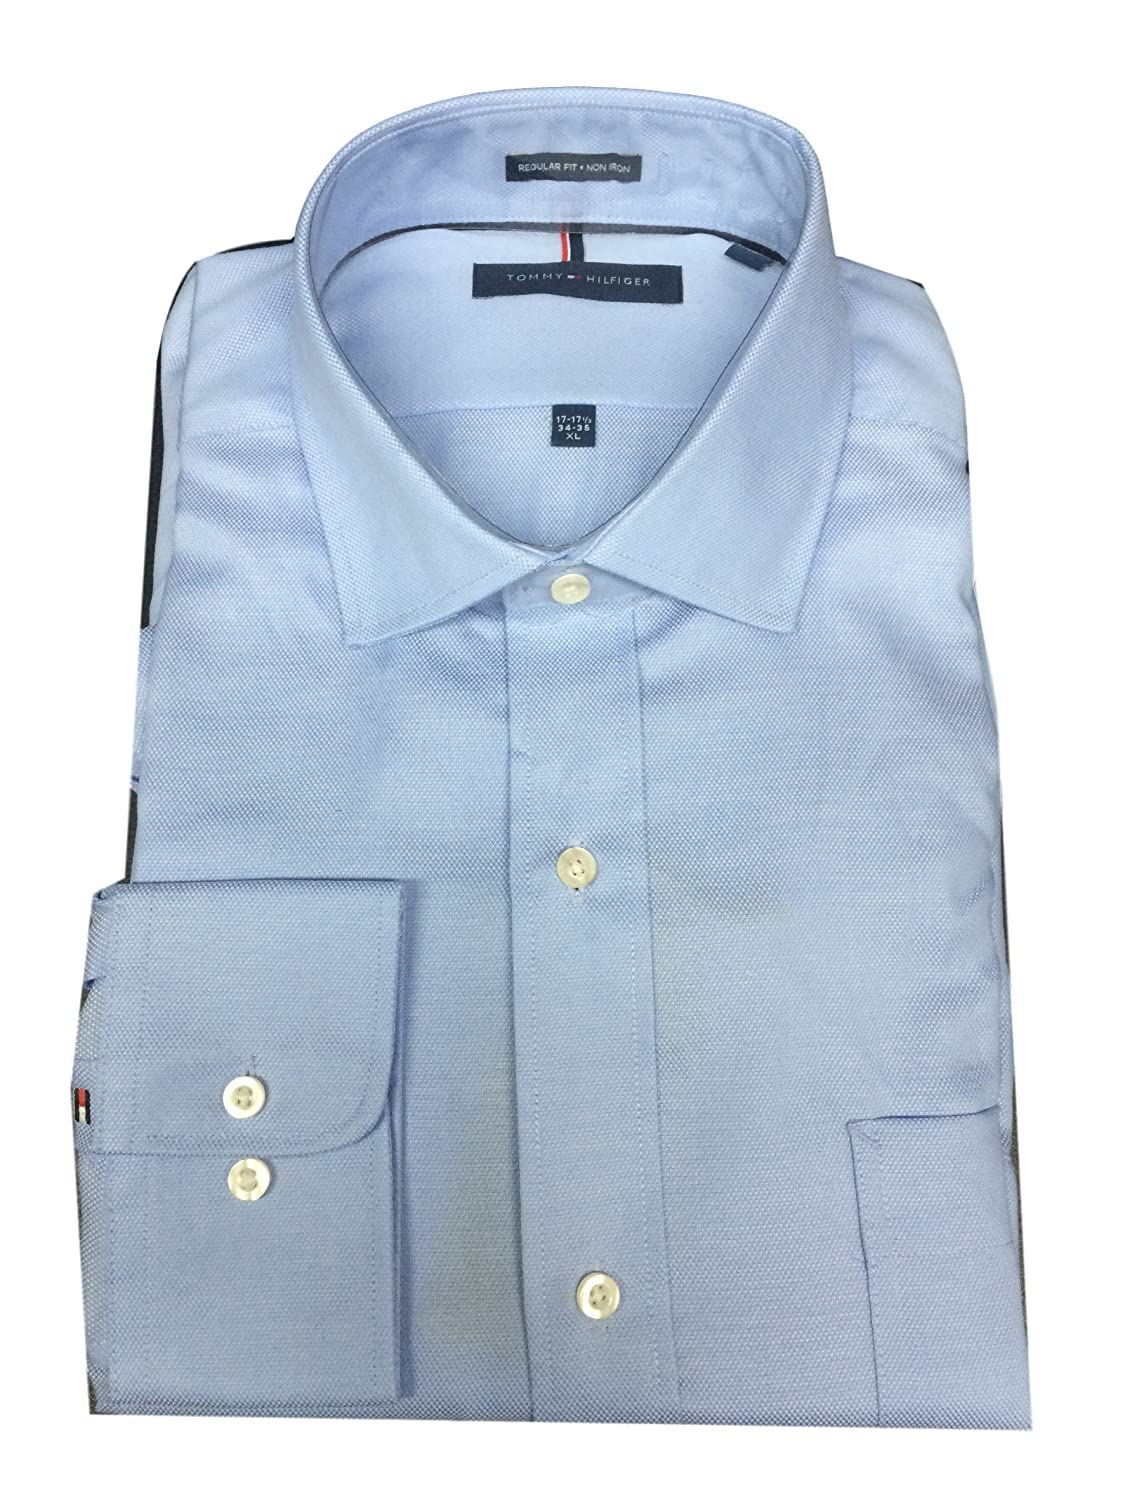 Tommy Hilfiger Mens Non Iron Regular Fit Spread Collar Dress Shirt 16-16.5 Neck, 36-37 Arm, Large